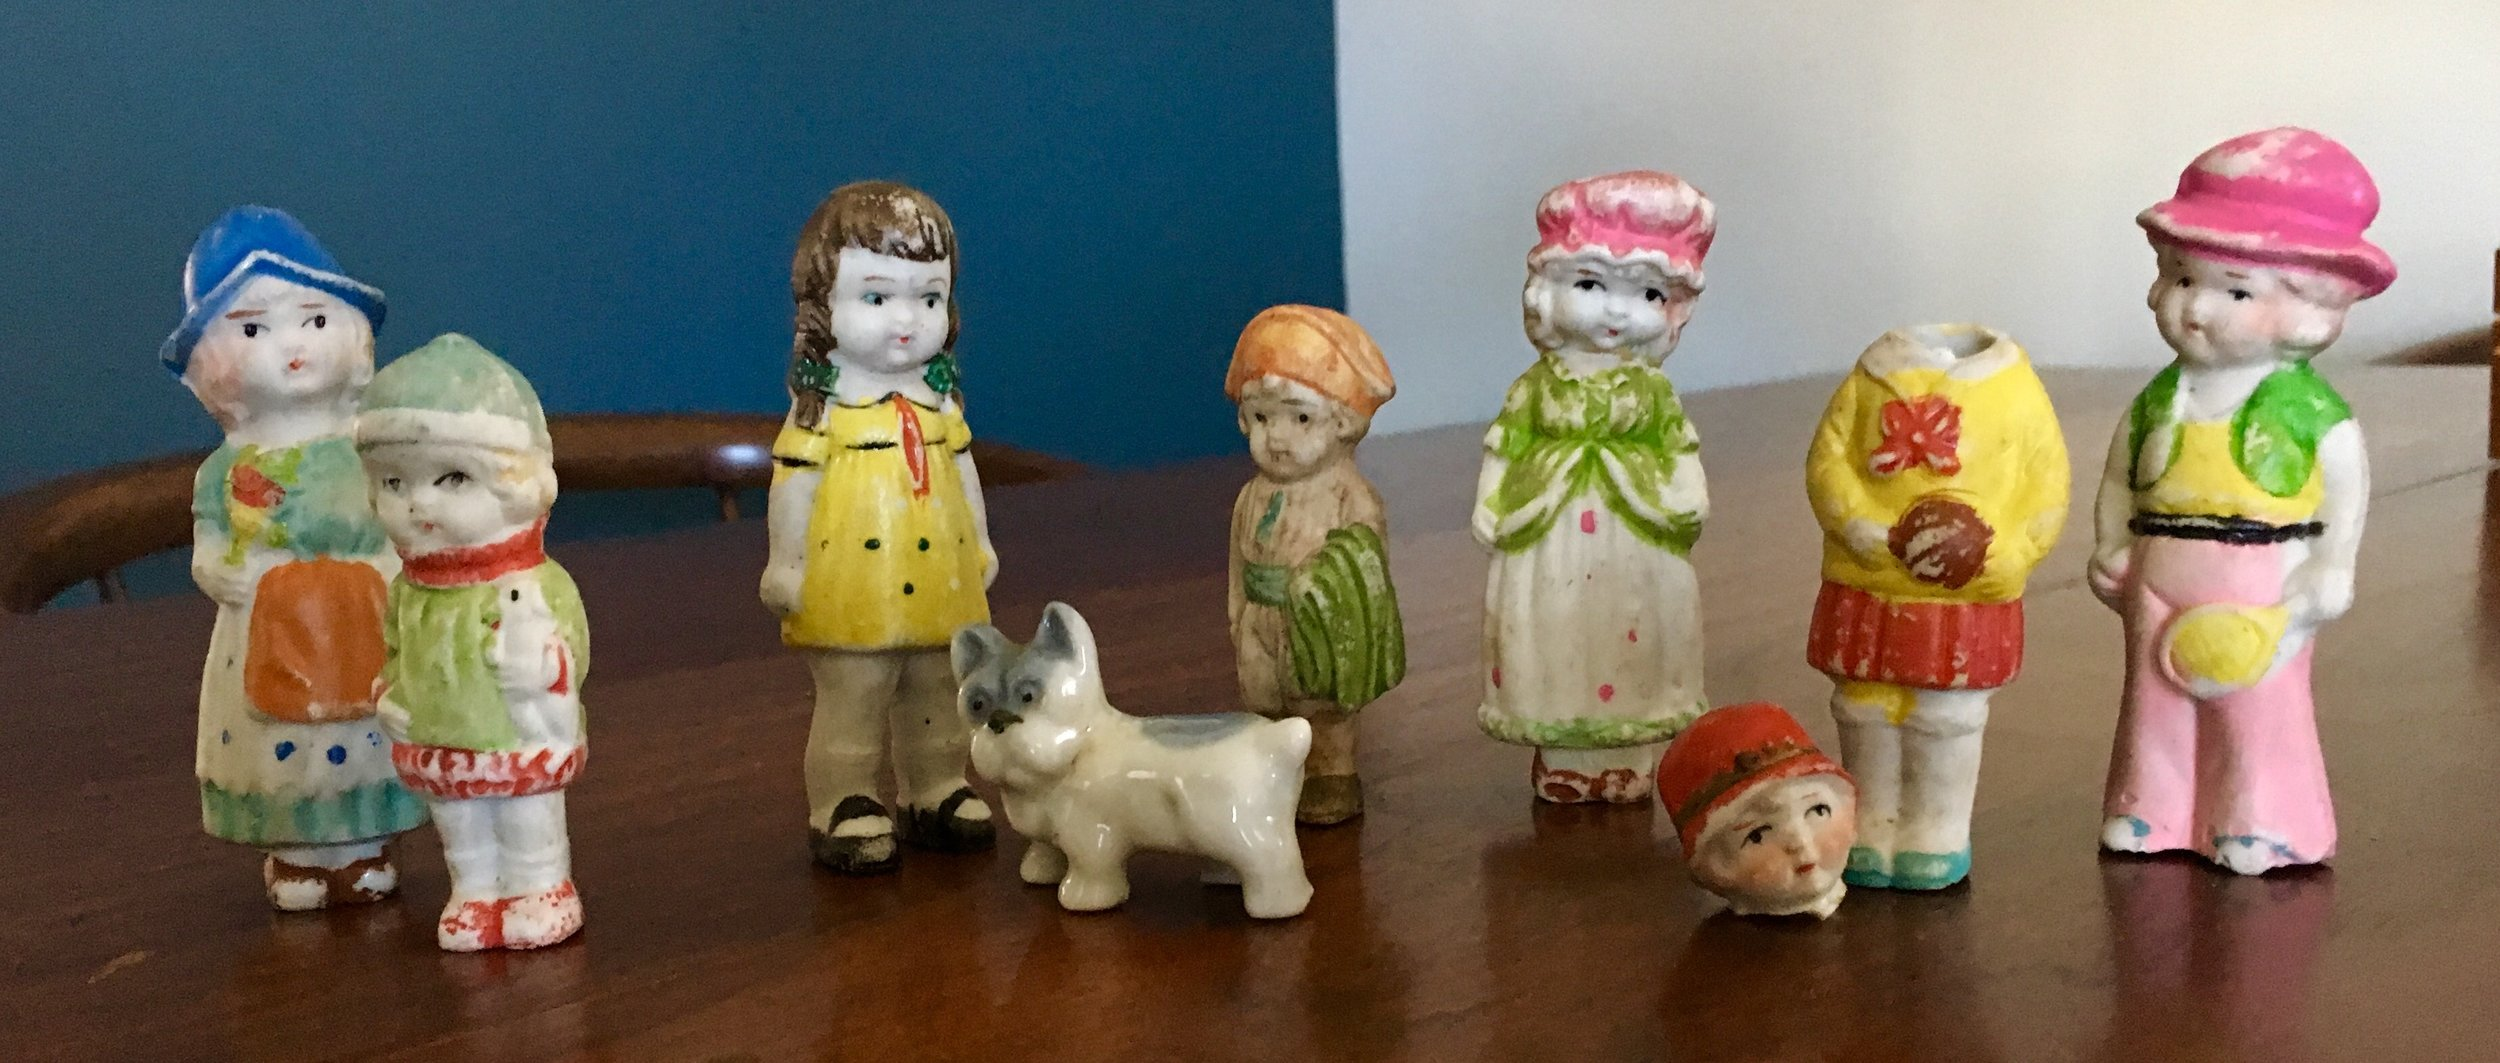 Small porcelain figures from today's estate sale (one lost her head during the drive home)